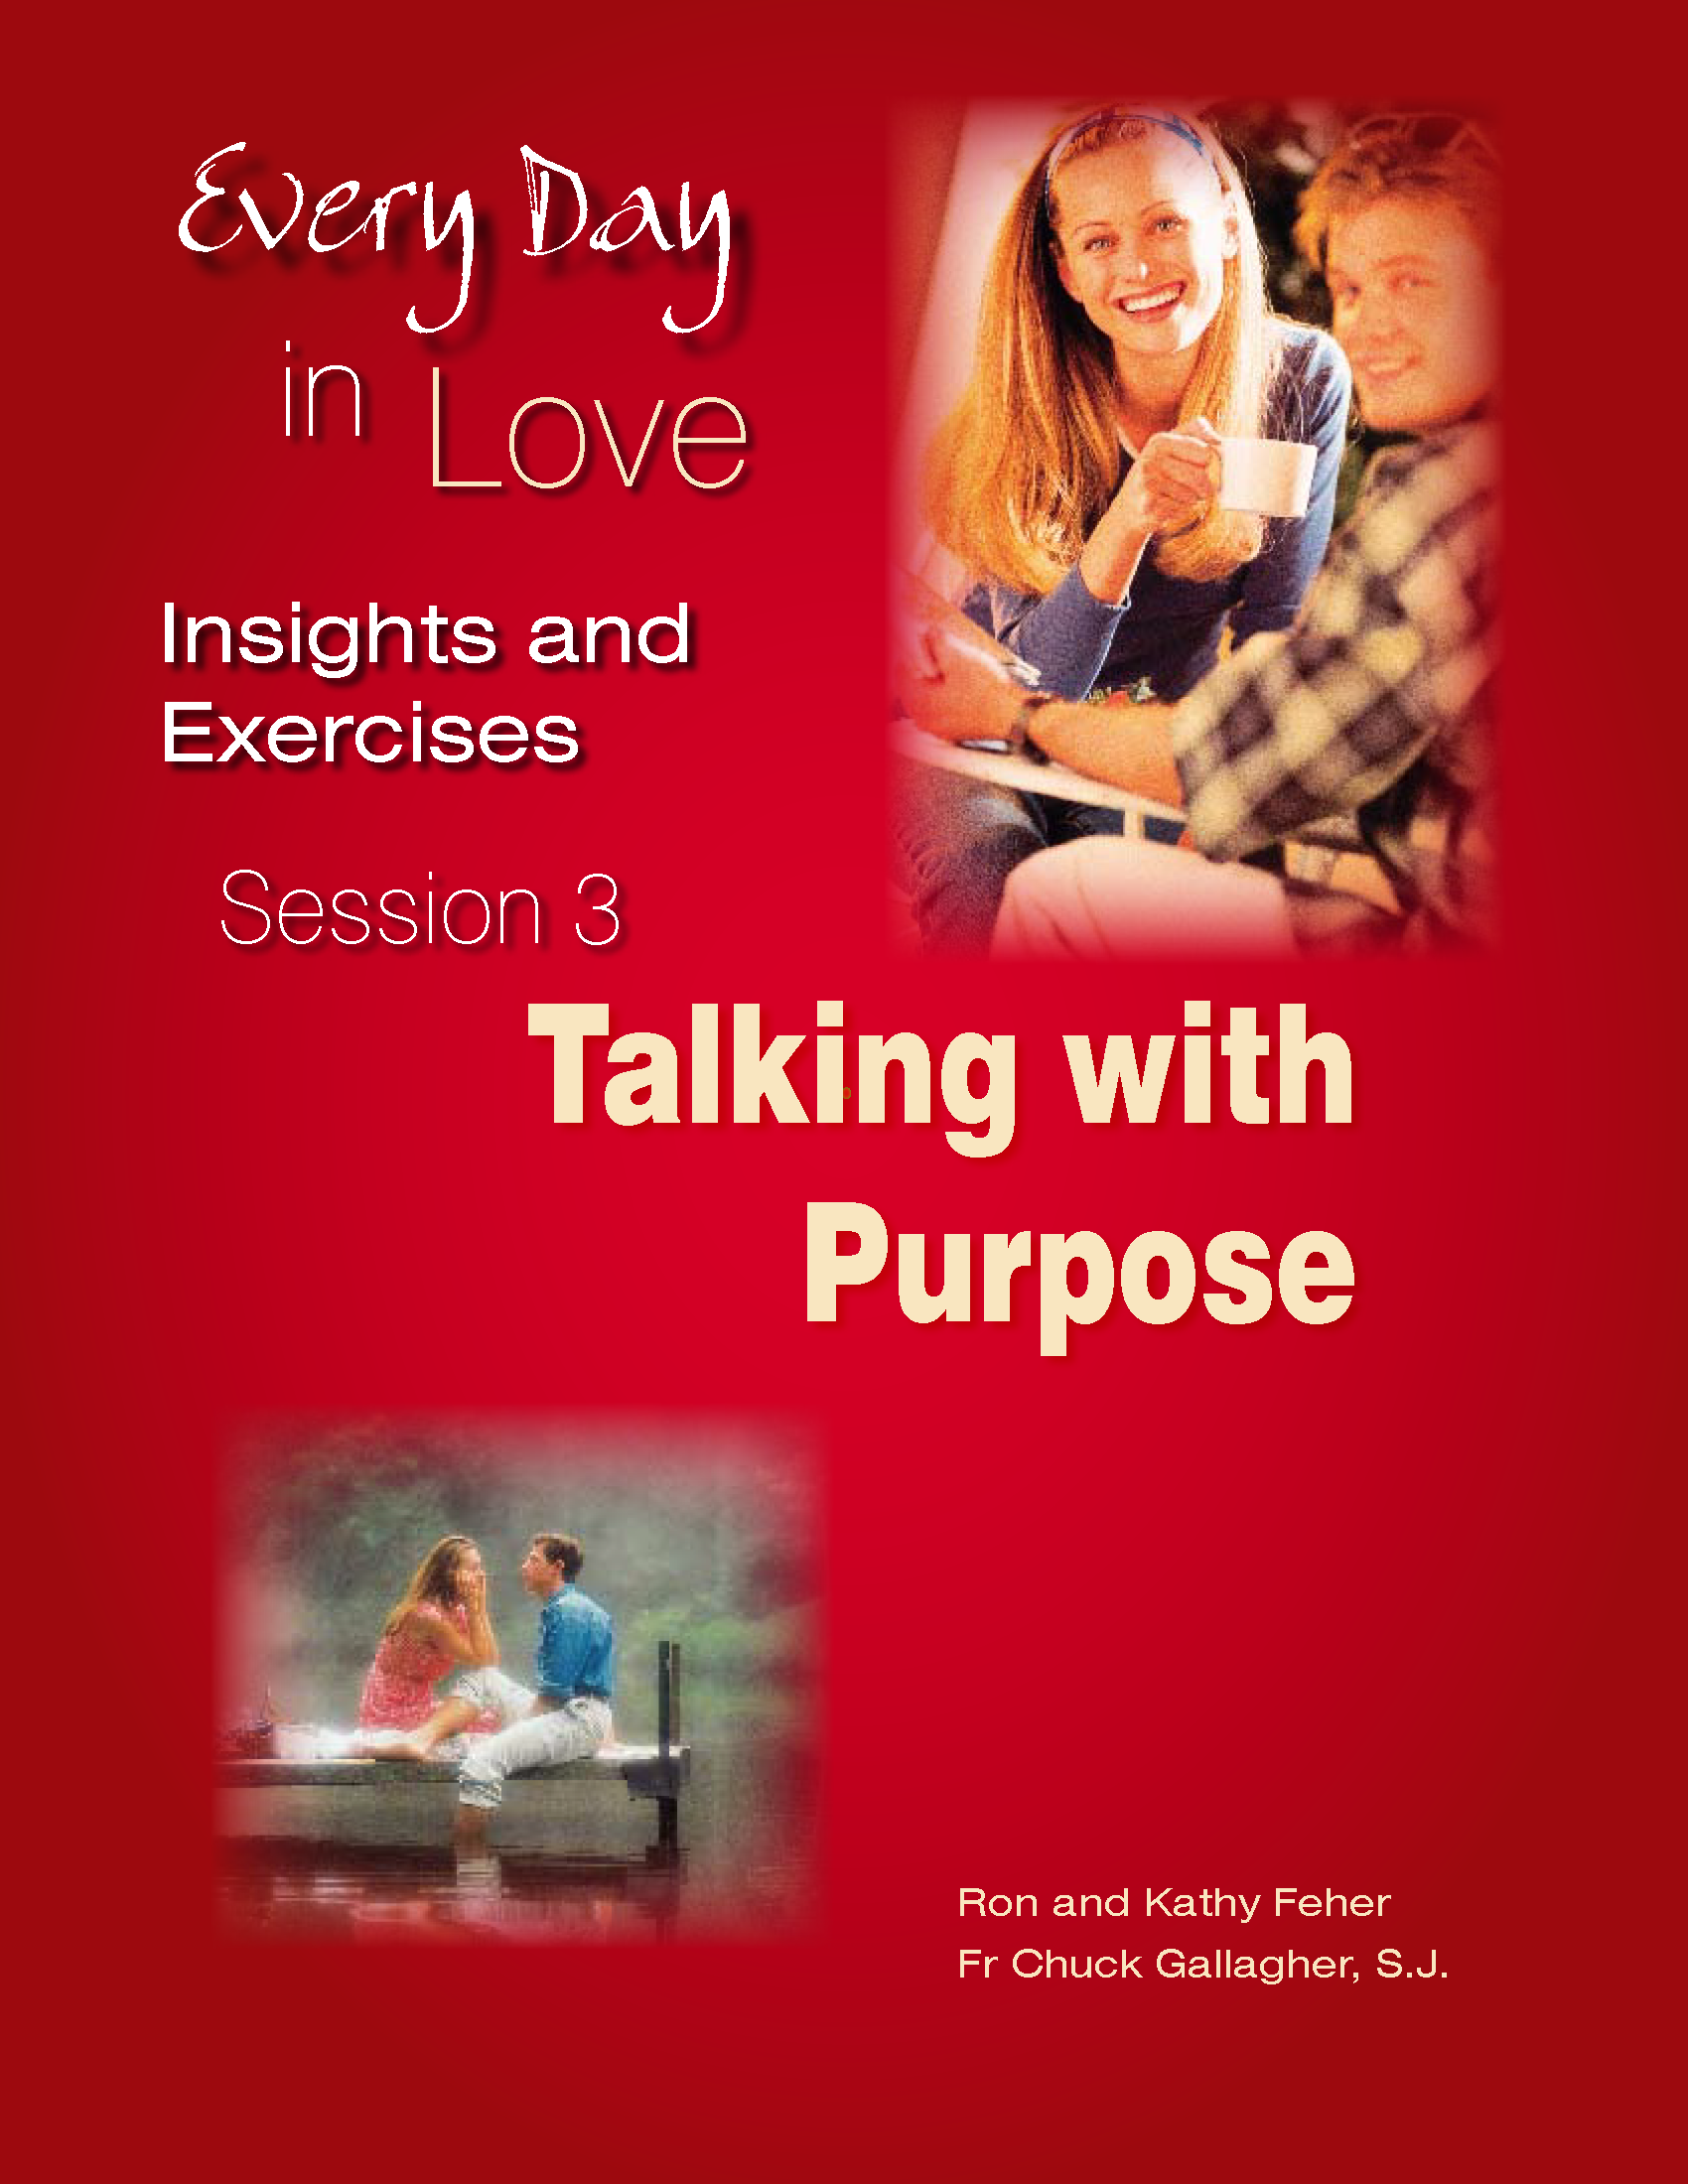 Session 3 Talking with Purpose